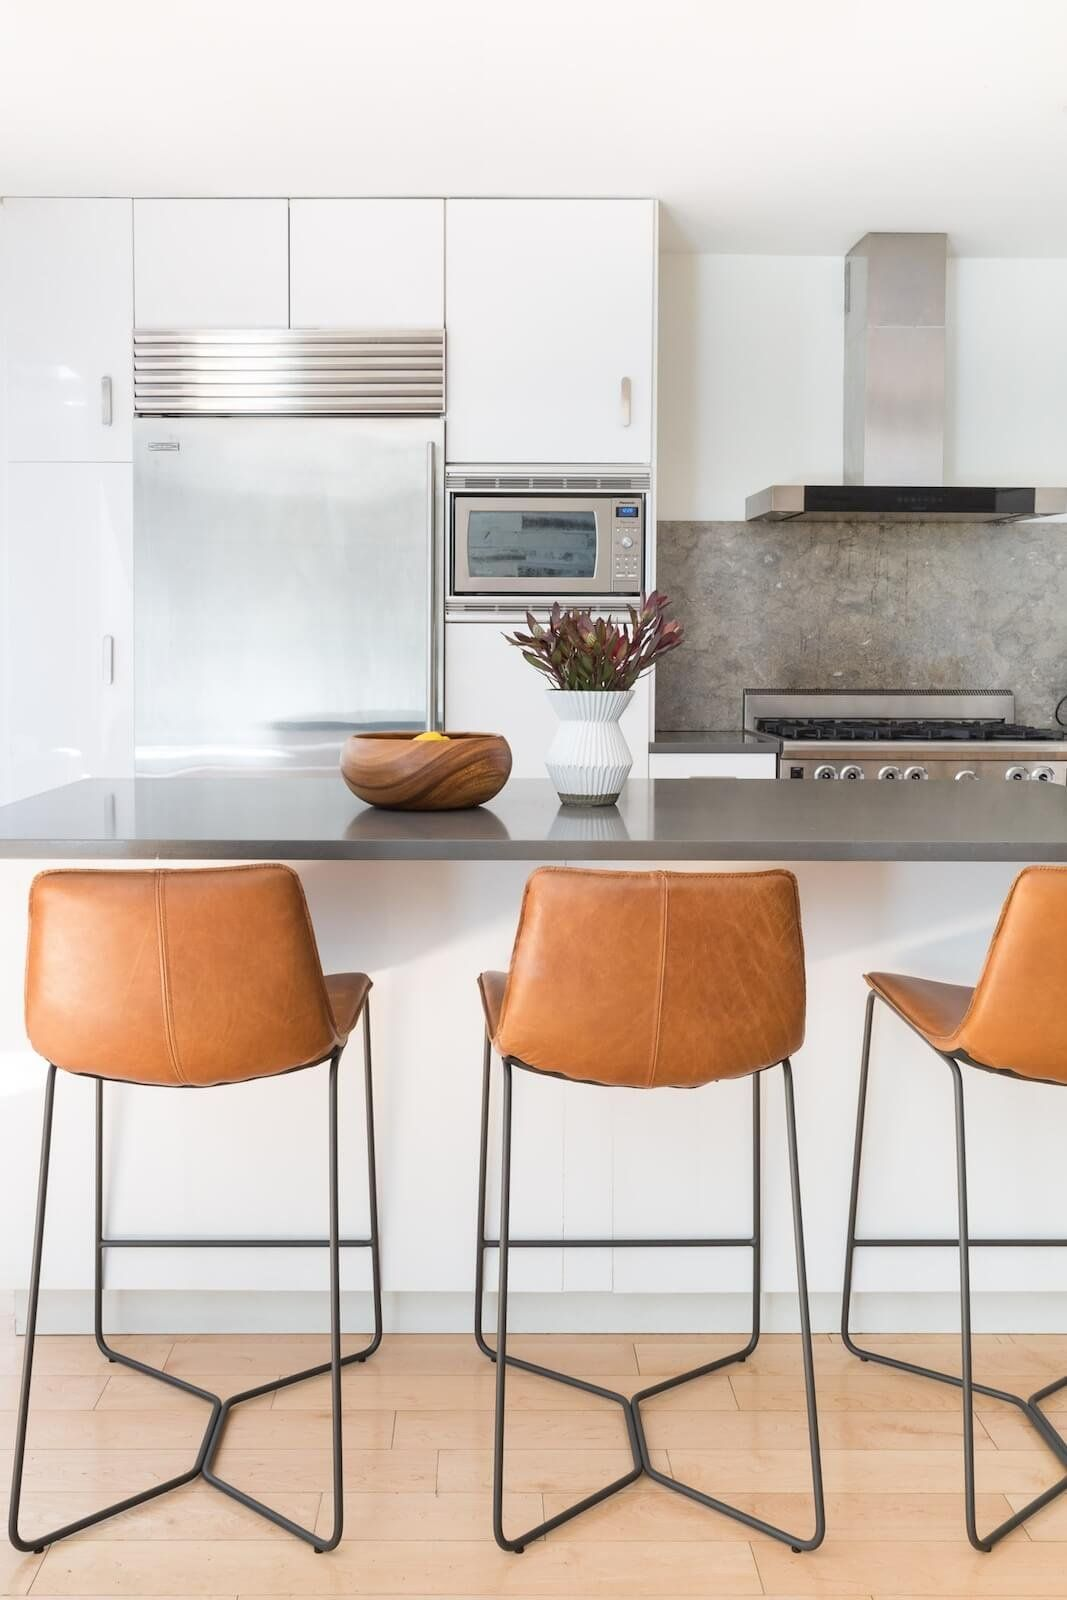 Spotted Our Saddle Leather Bar Stools Tying Together This Condo Kitchen Seen On Brownstoner Comfortable Kitchen Kitchen Remodel Small Kitchen Decor